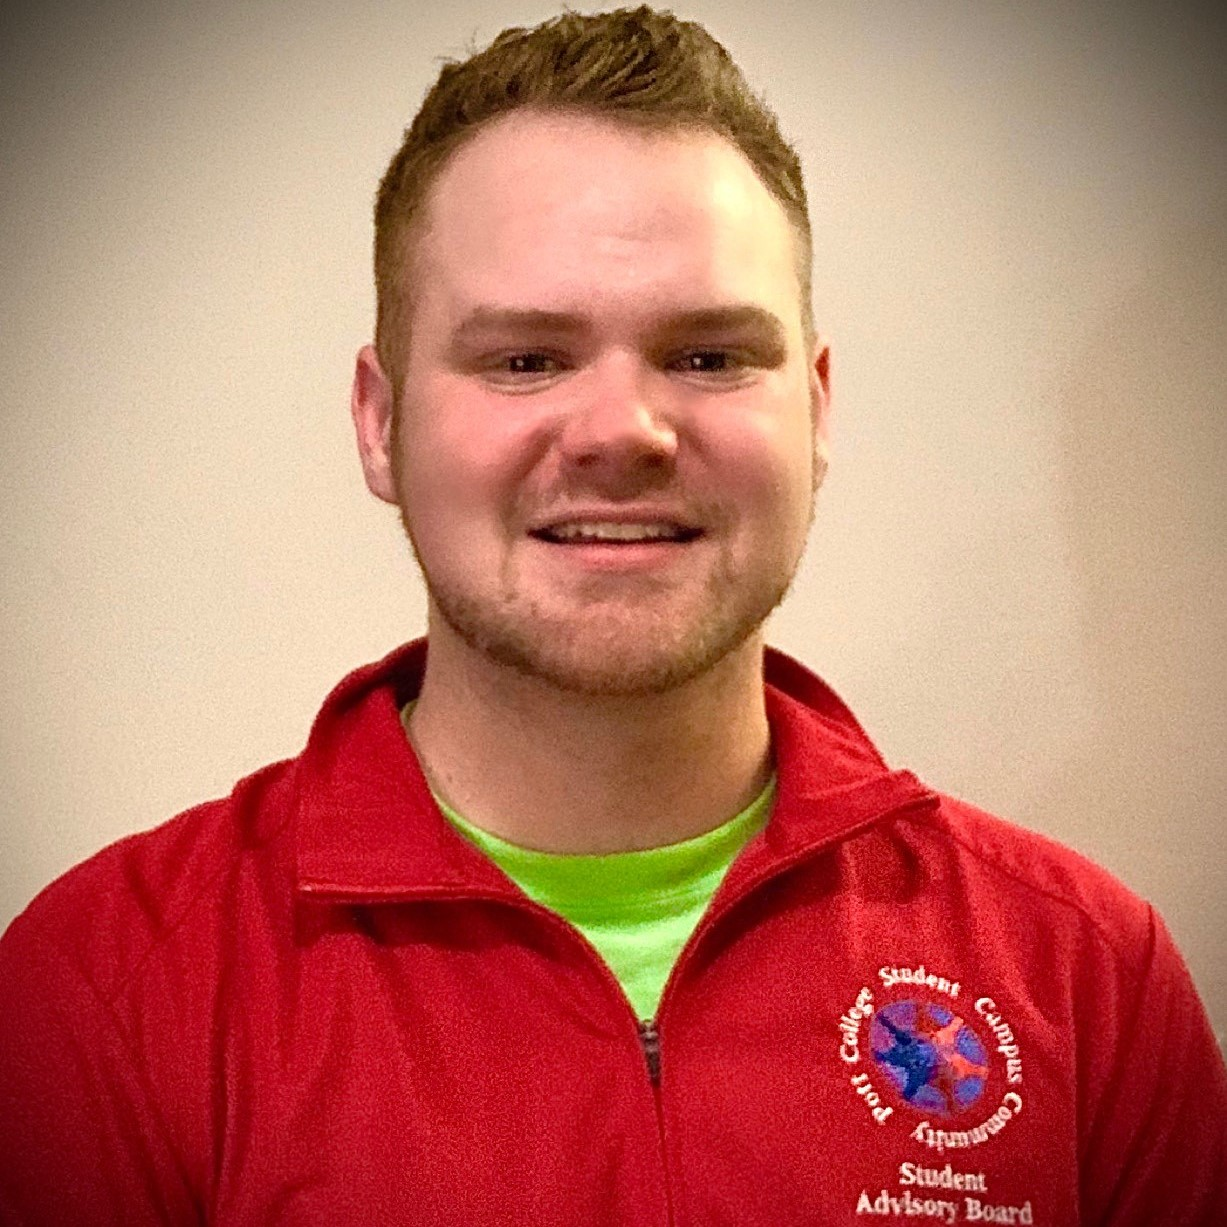 Get to know your Student Advisory Board Co-Chair: Josh Dudek